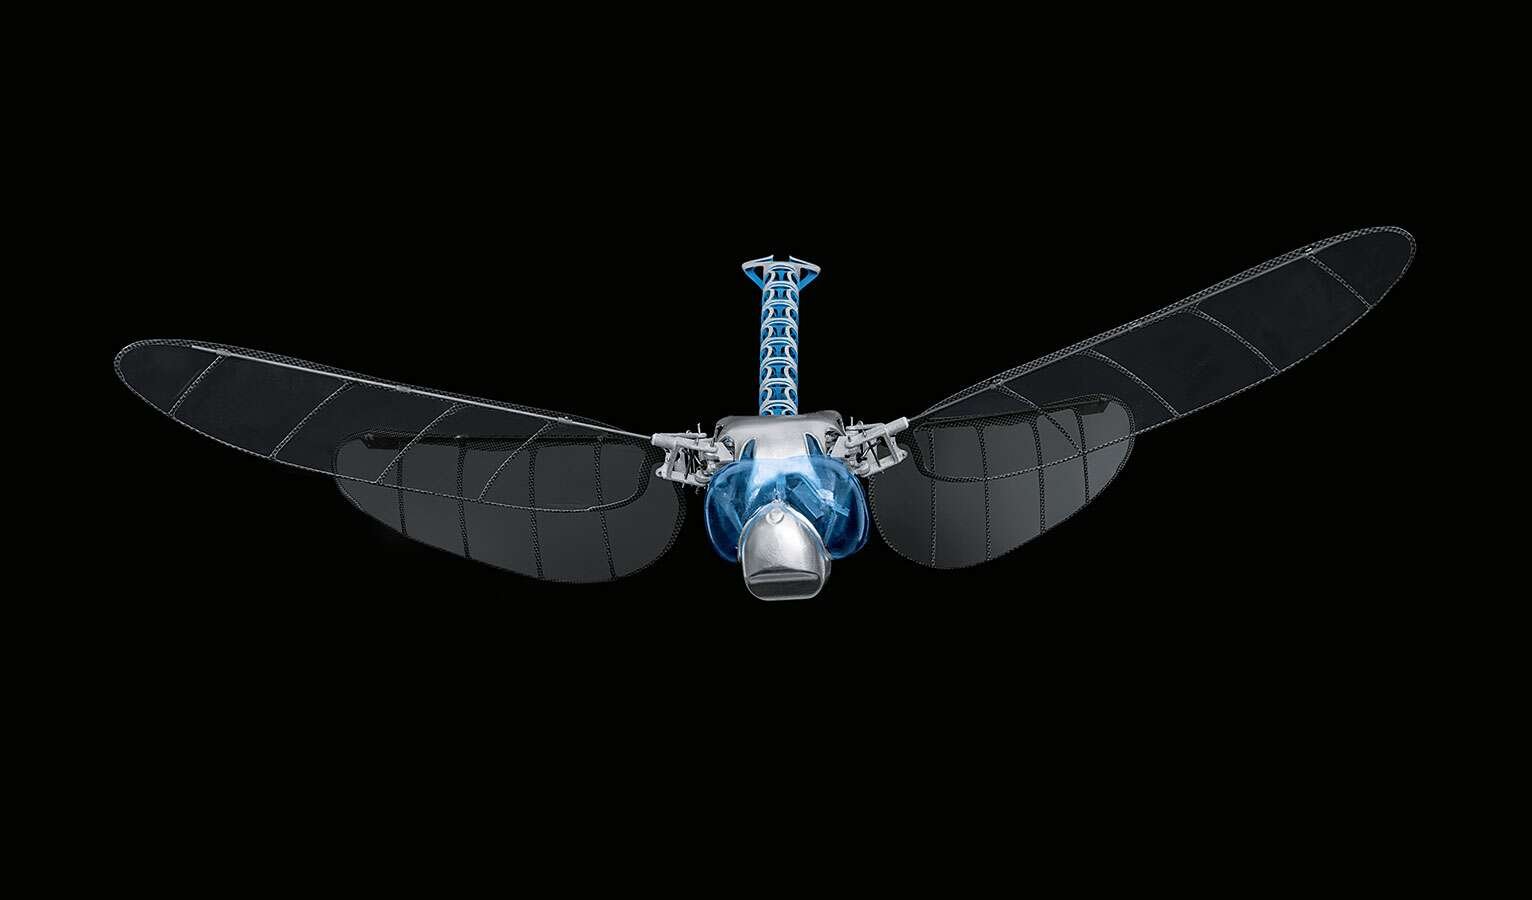 ... technically achieved for the first time with the BionicOpter from Festo